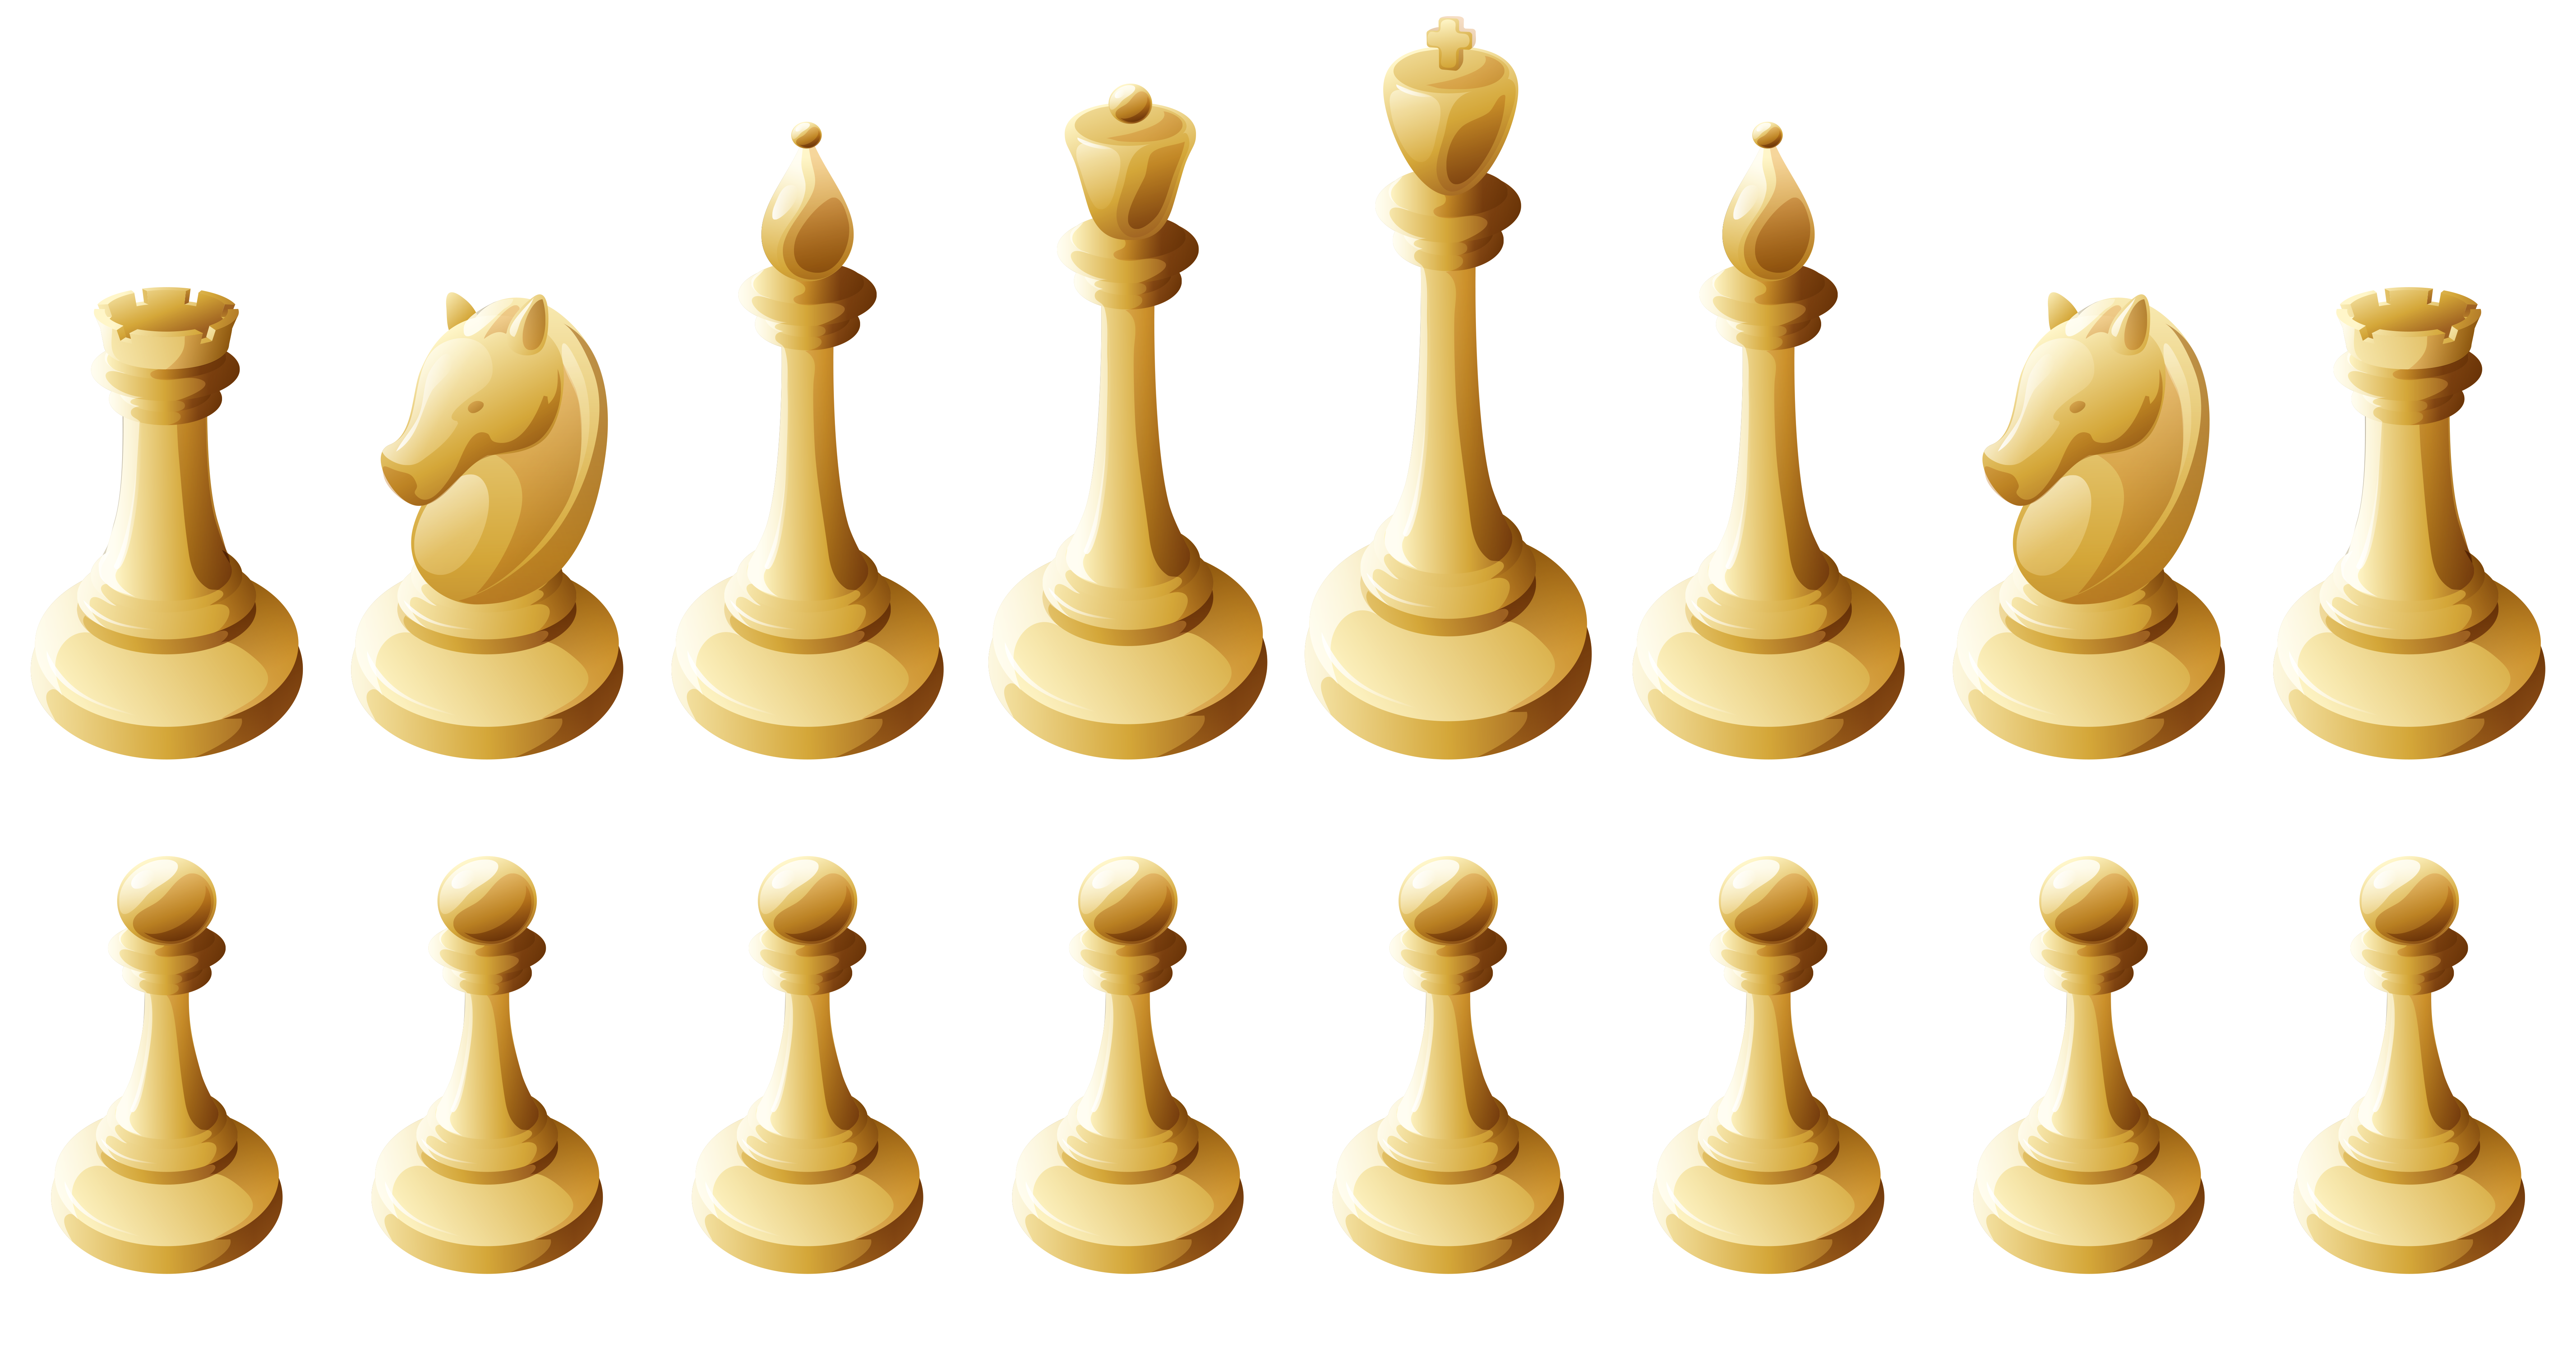 Games clipart game piece. White chess pieces png